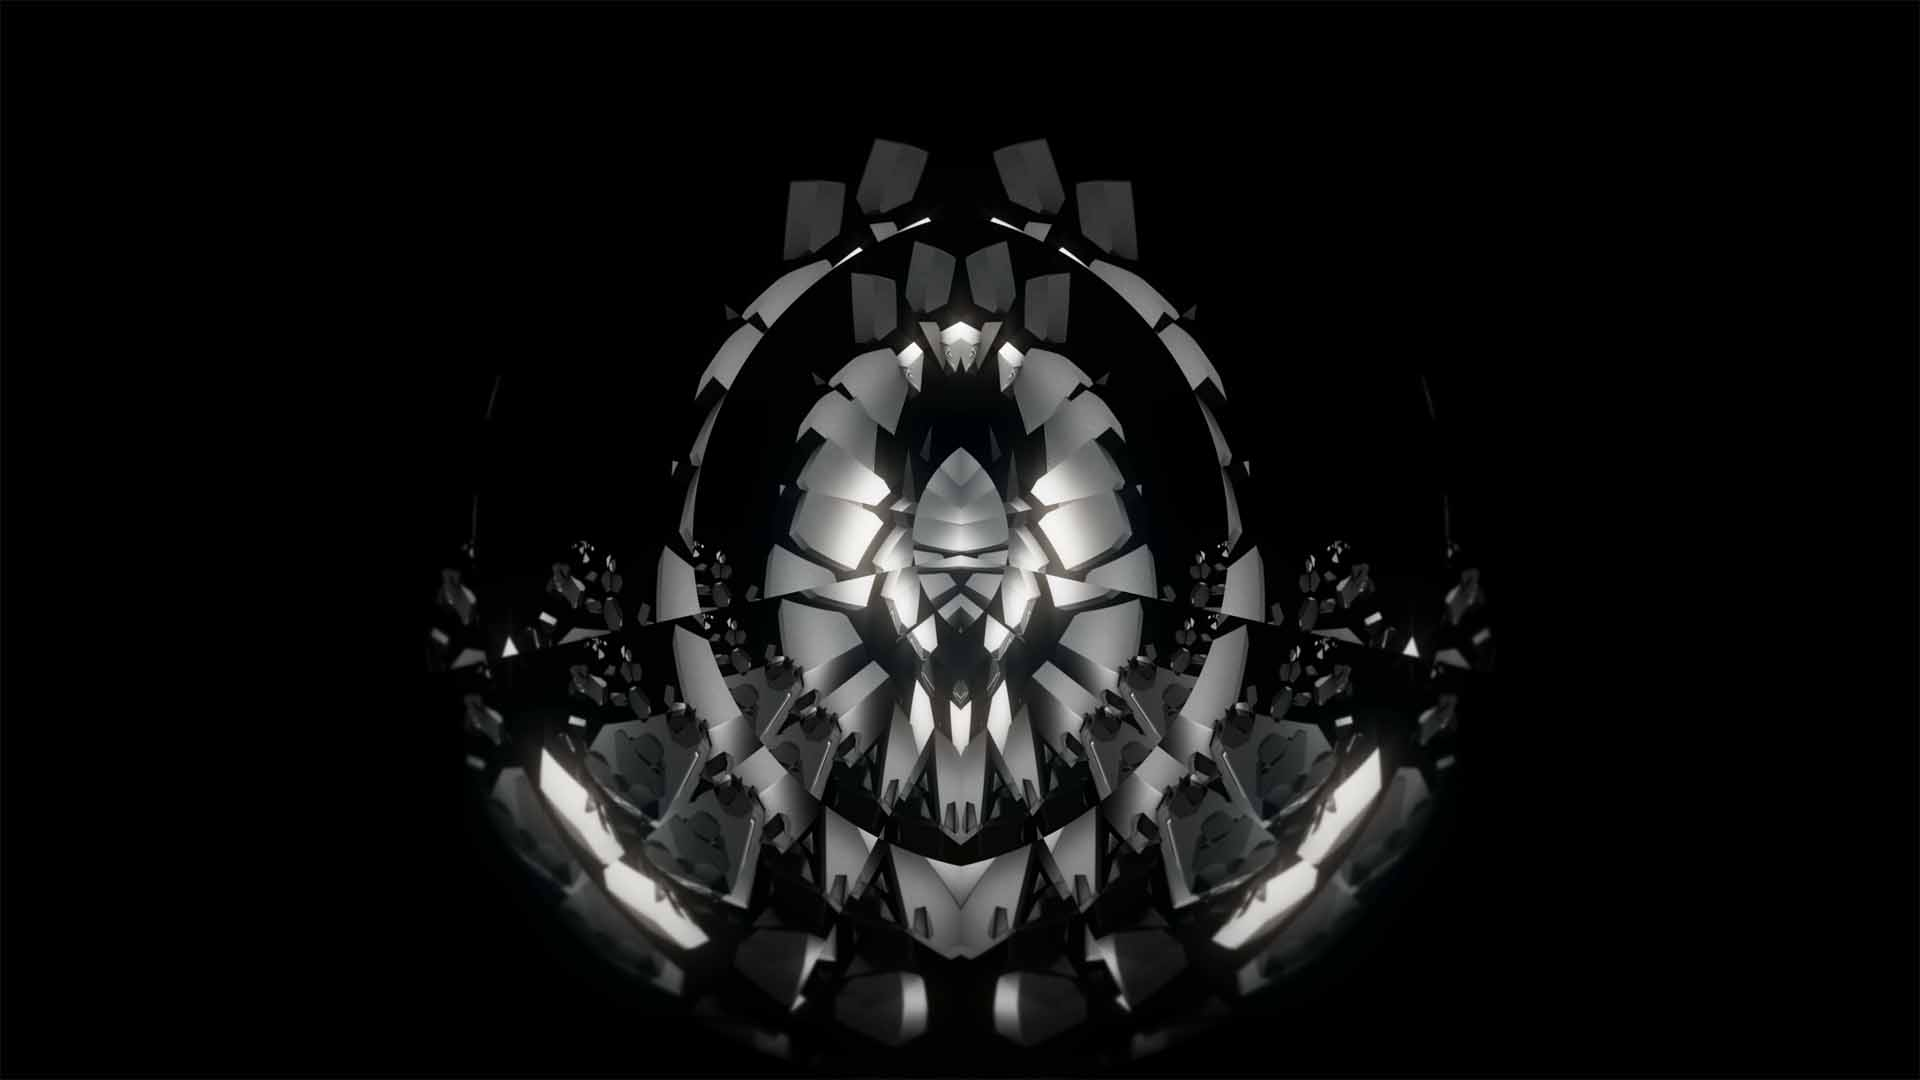 Abstract VJ Loop